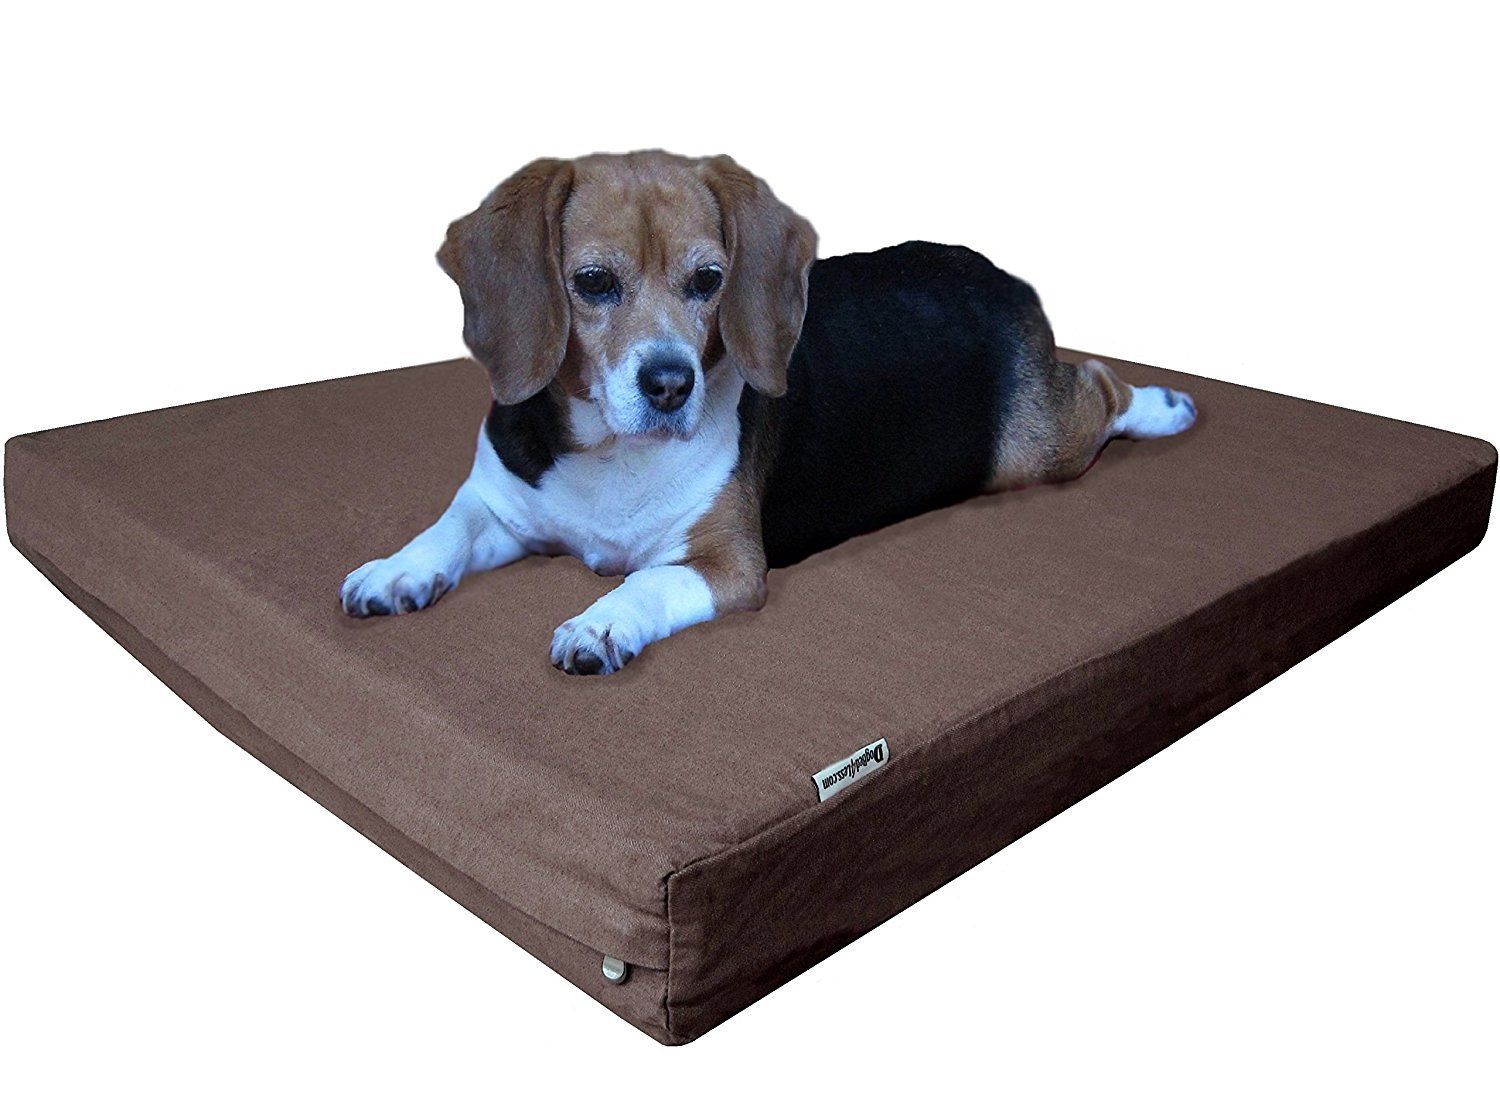 Dogbed4less Orthopedic Gel Infused Cooling Memory Foam Dog